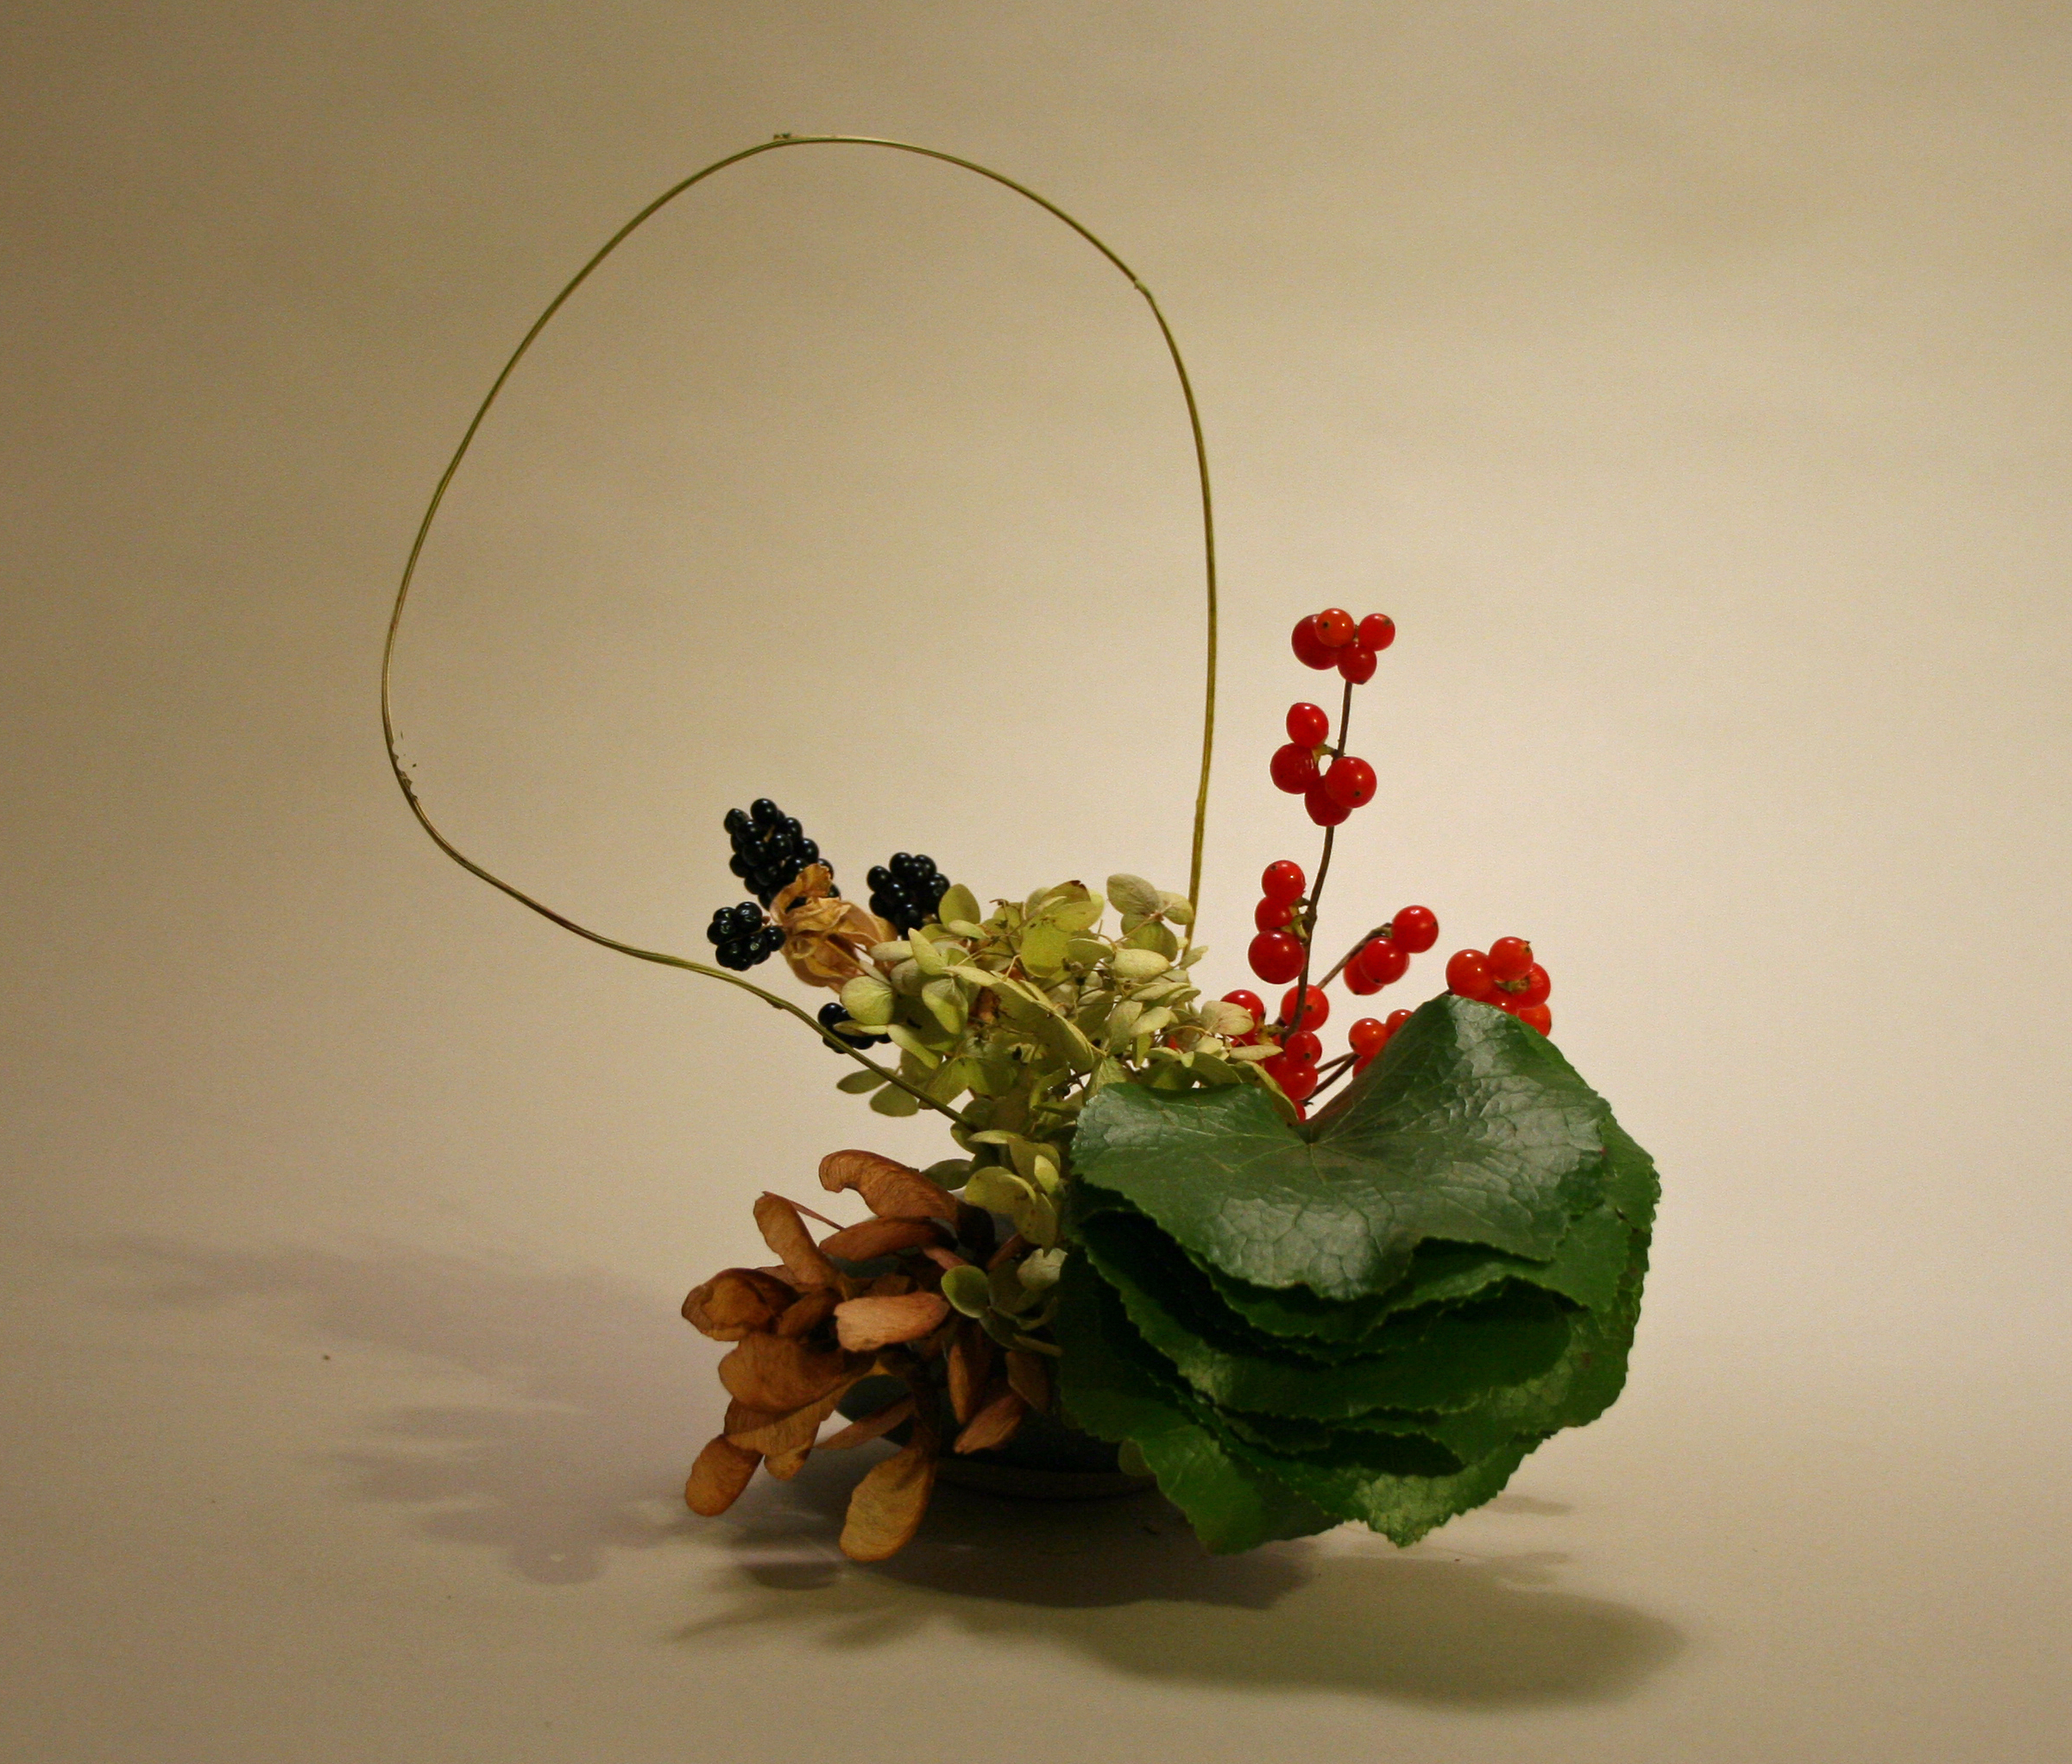 49 new ikebana vase home idea 365 days of ikebana day 117 keith stanley reviewsmspy